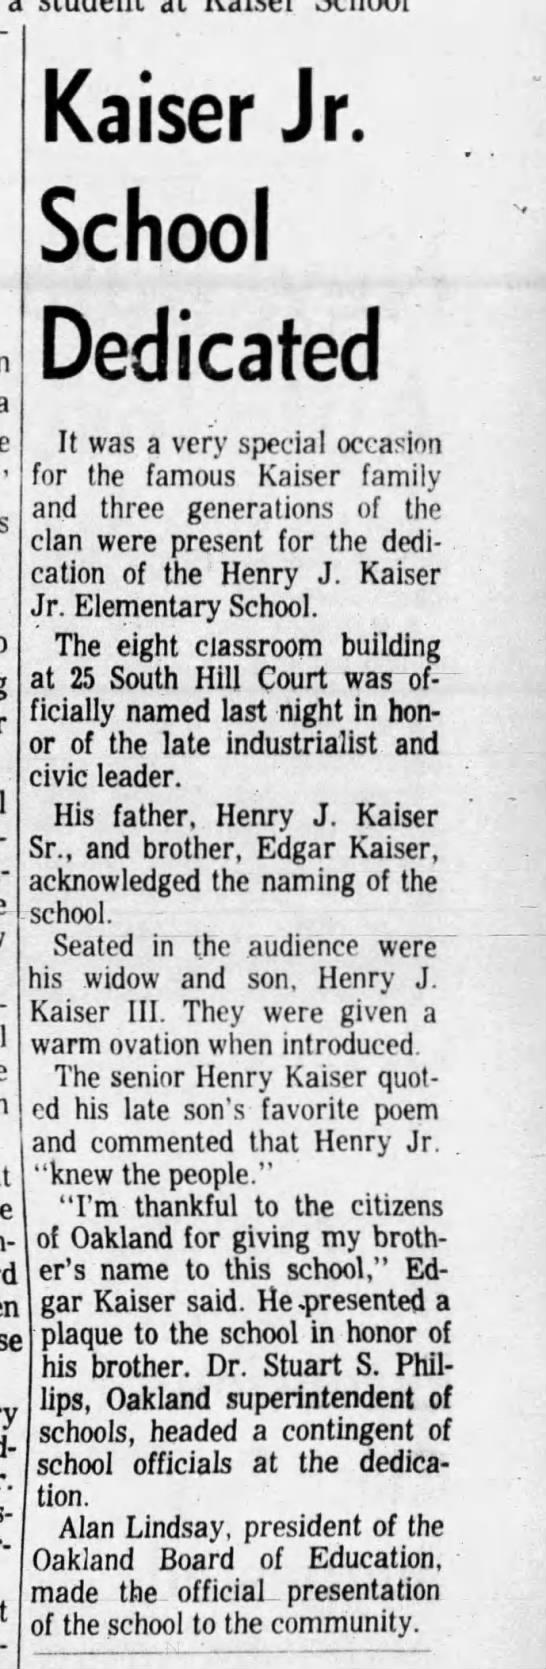 Kaiser Dedicated - Feb 05, 1964 -